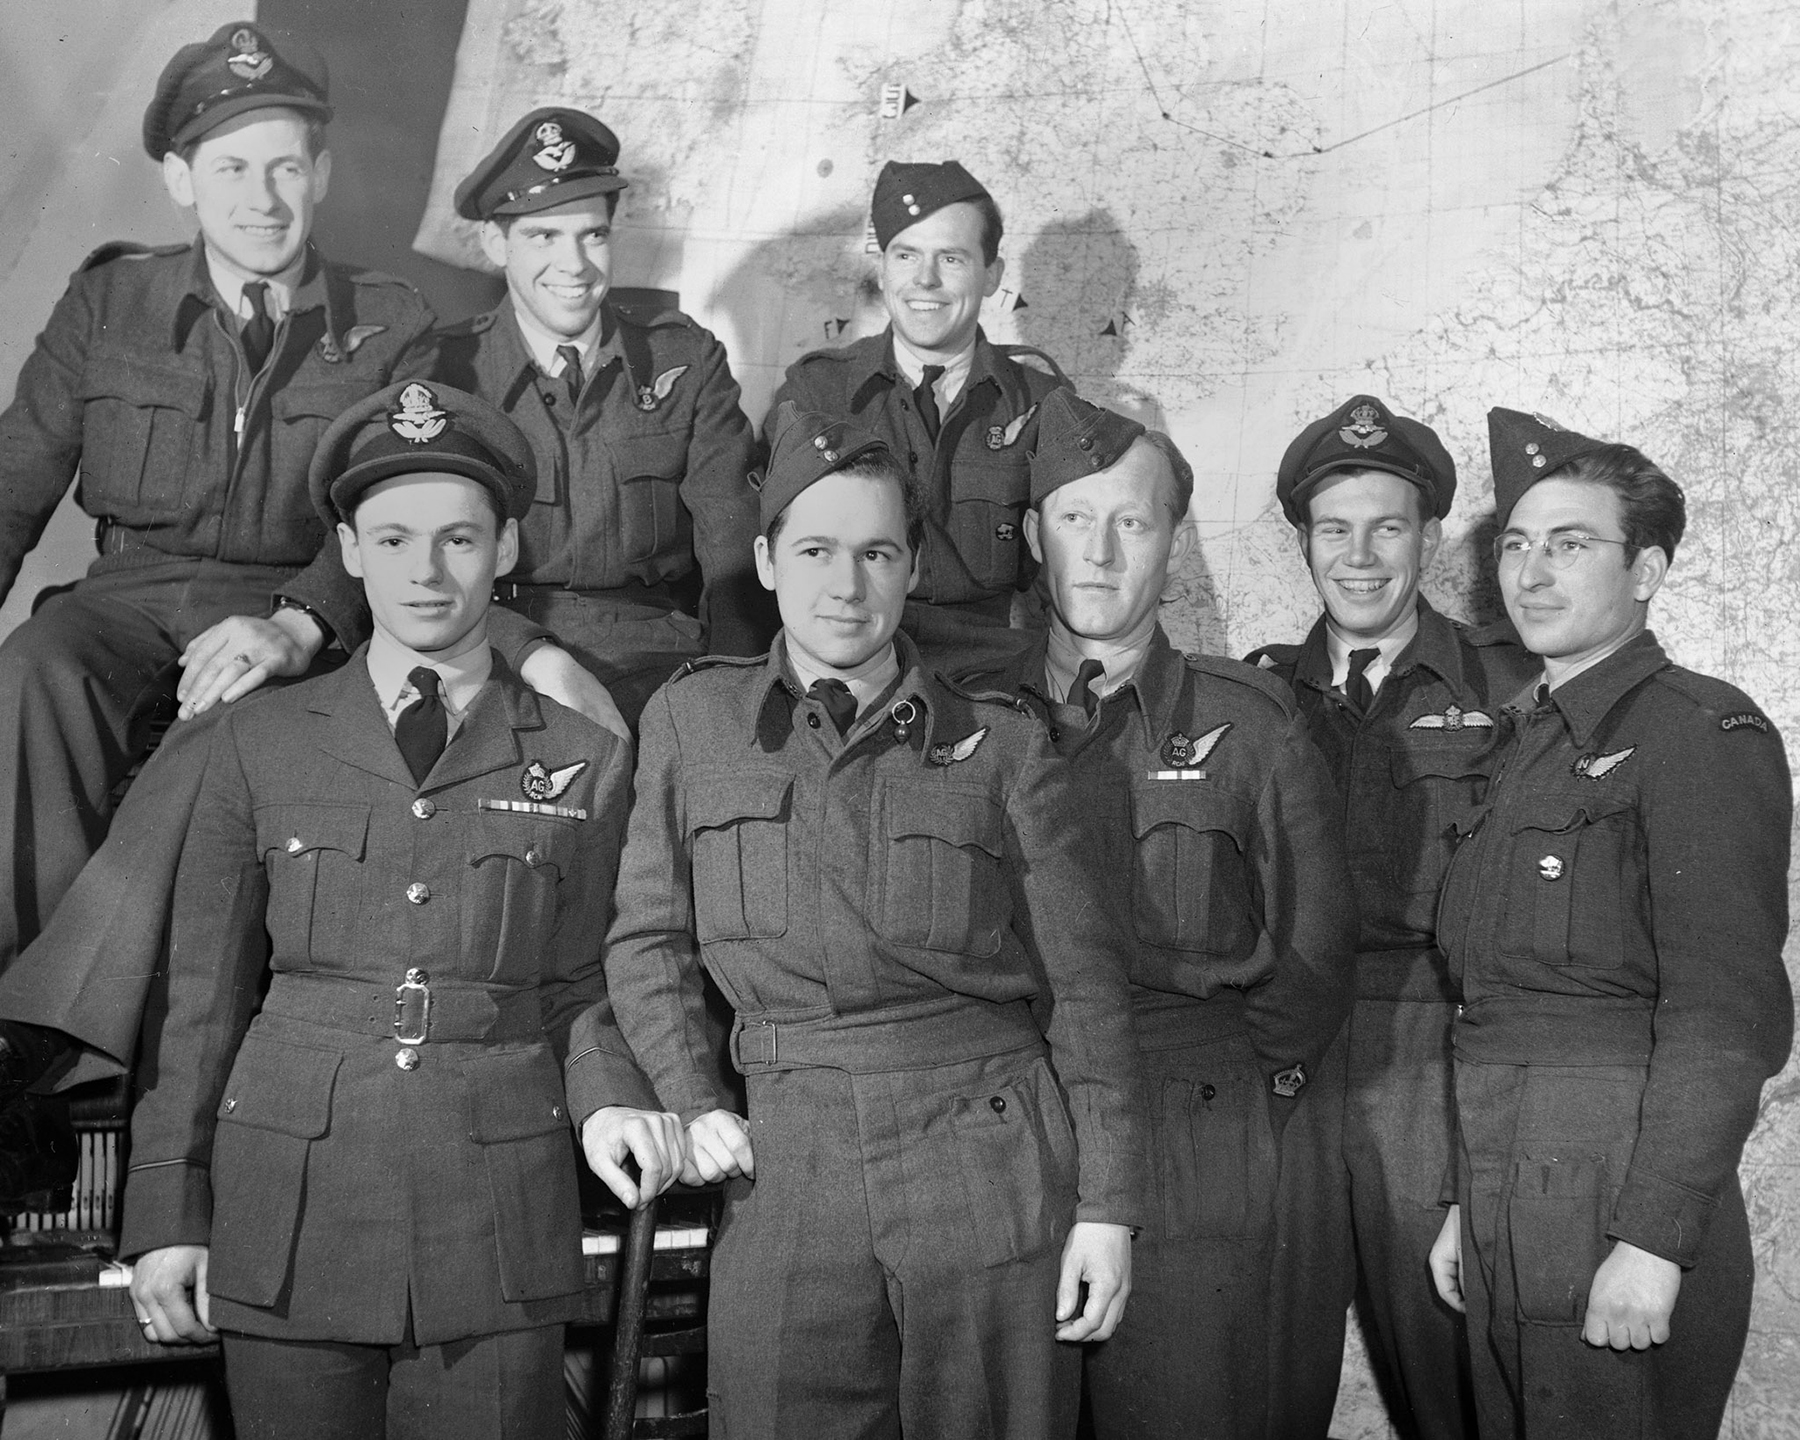 On November 24, 1945, at Leeming, England, the Bison and Lion Squadrons, are the only two Canadian bomber squadrons still flying with the Occupational Air Force. Pictured here, grouped in front of a large map, are 429 Bison Squadron men from Northern Ontario just before preparing for a flight to gather up RCAF men from the continent and bring them back to England. Front row, from left: Pilot Officer H.G. Bowles, Flying Officer D.M. Draper, Warrant Officer A.J. Wilvers, Flying Officer D.W. Greiger, and Flight Sergeant L.P. Gatien. Back row, from left: Flying Officer N.E. Beauchesne, Pilot Officer G.F. Burmaster, and Warrant Officer A.N. Boswell. PHOTO: DND Archives, PL-46308